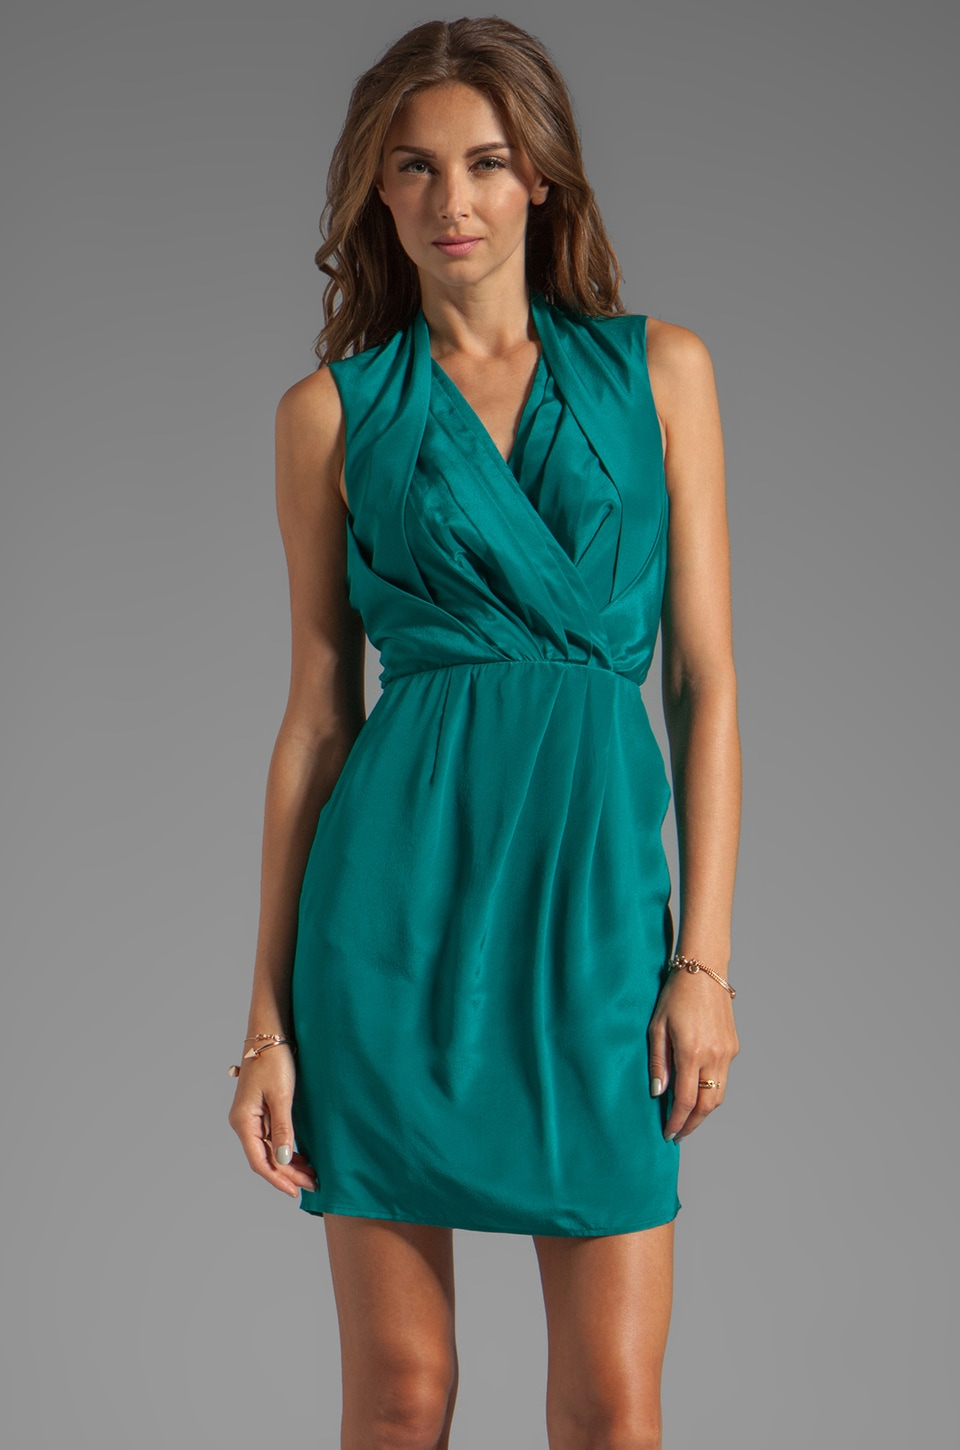 Greylin Camila Dress in Teal